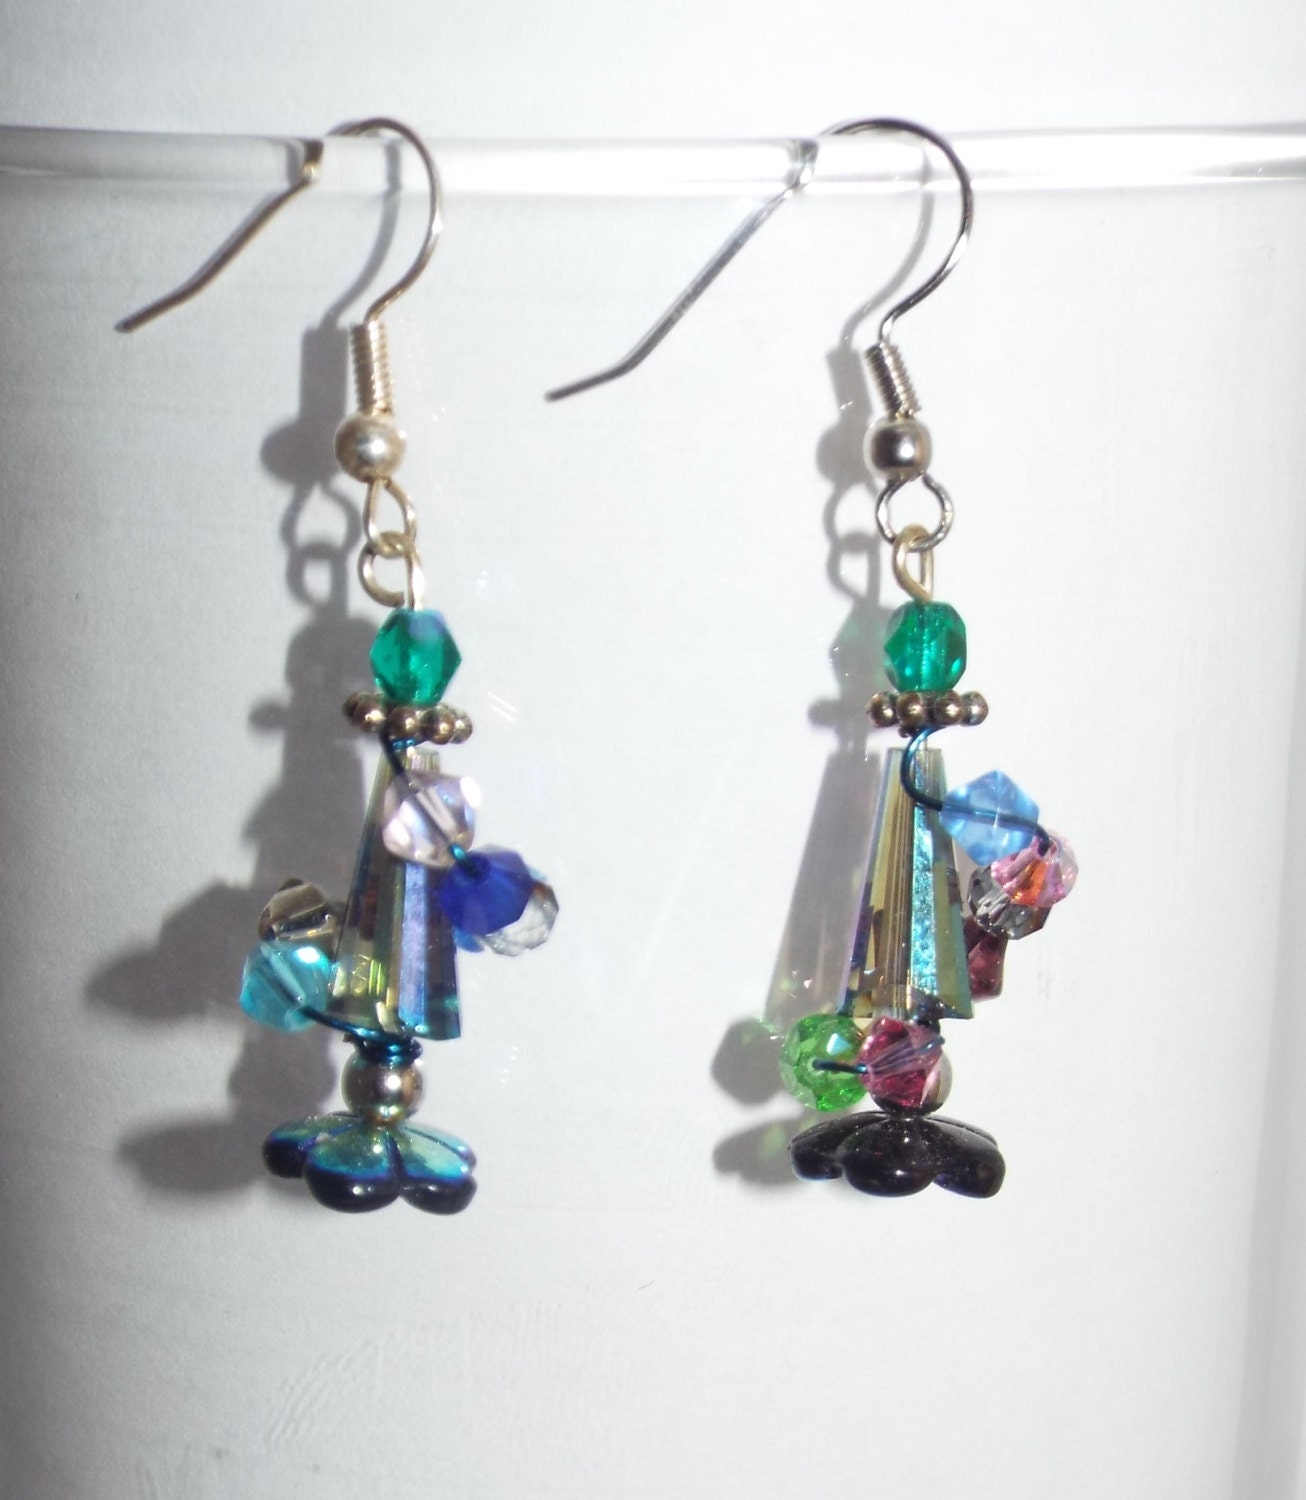 Decorate Christmas Tree With Beads: Handmade Decorated Christmas Tree Earrings With Beads Wrap